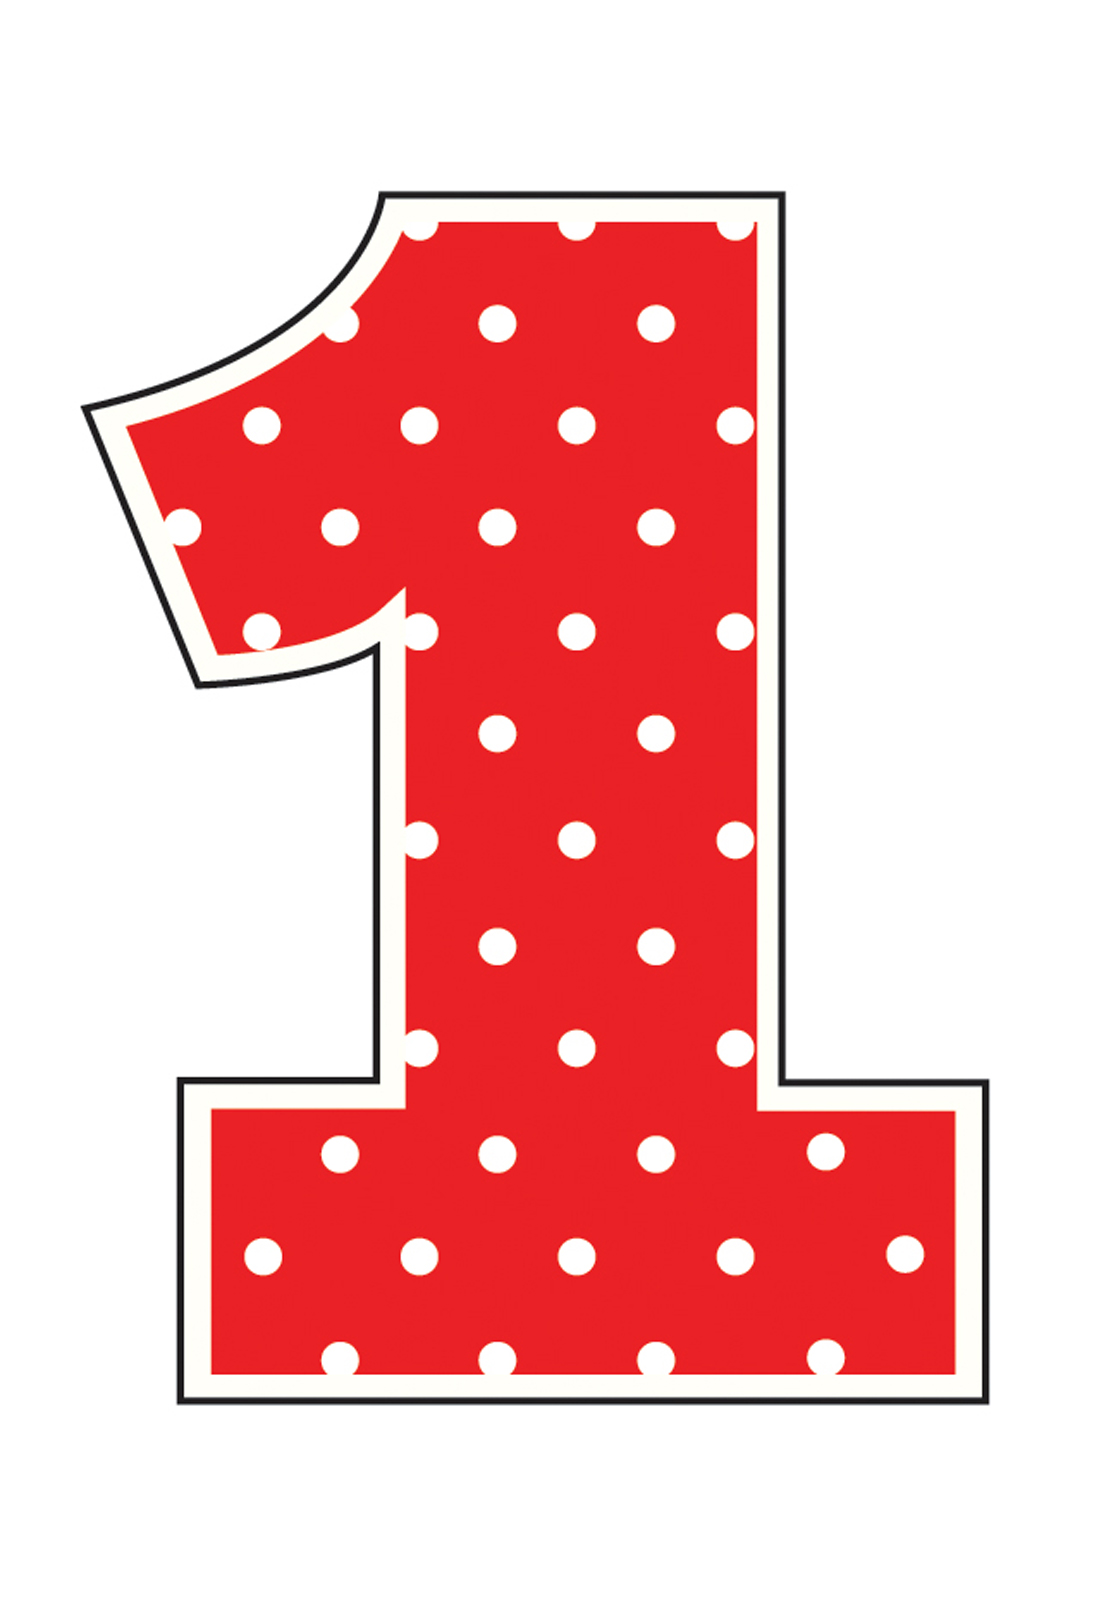 Red Polka Dot Candle Thepartyworks-Red Polka Dot Candle Thepartyworks-7